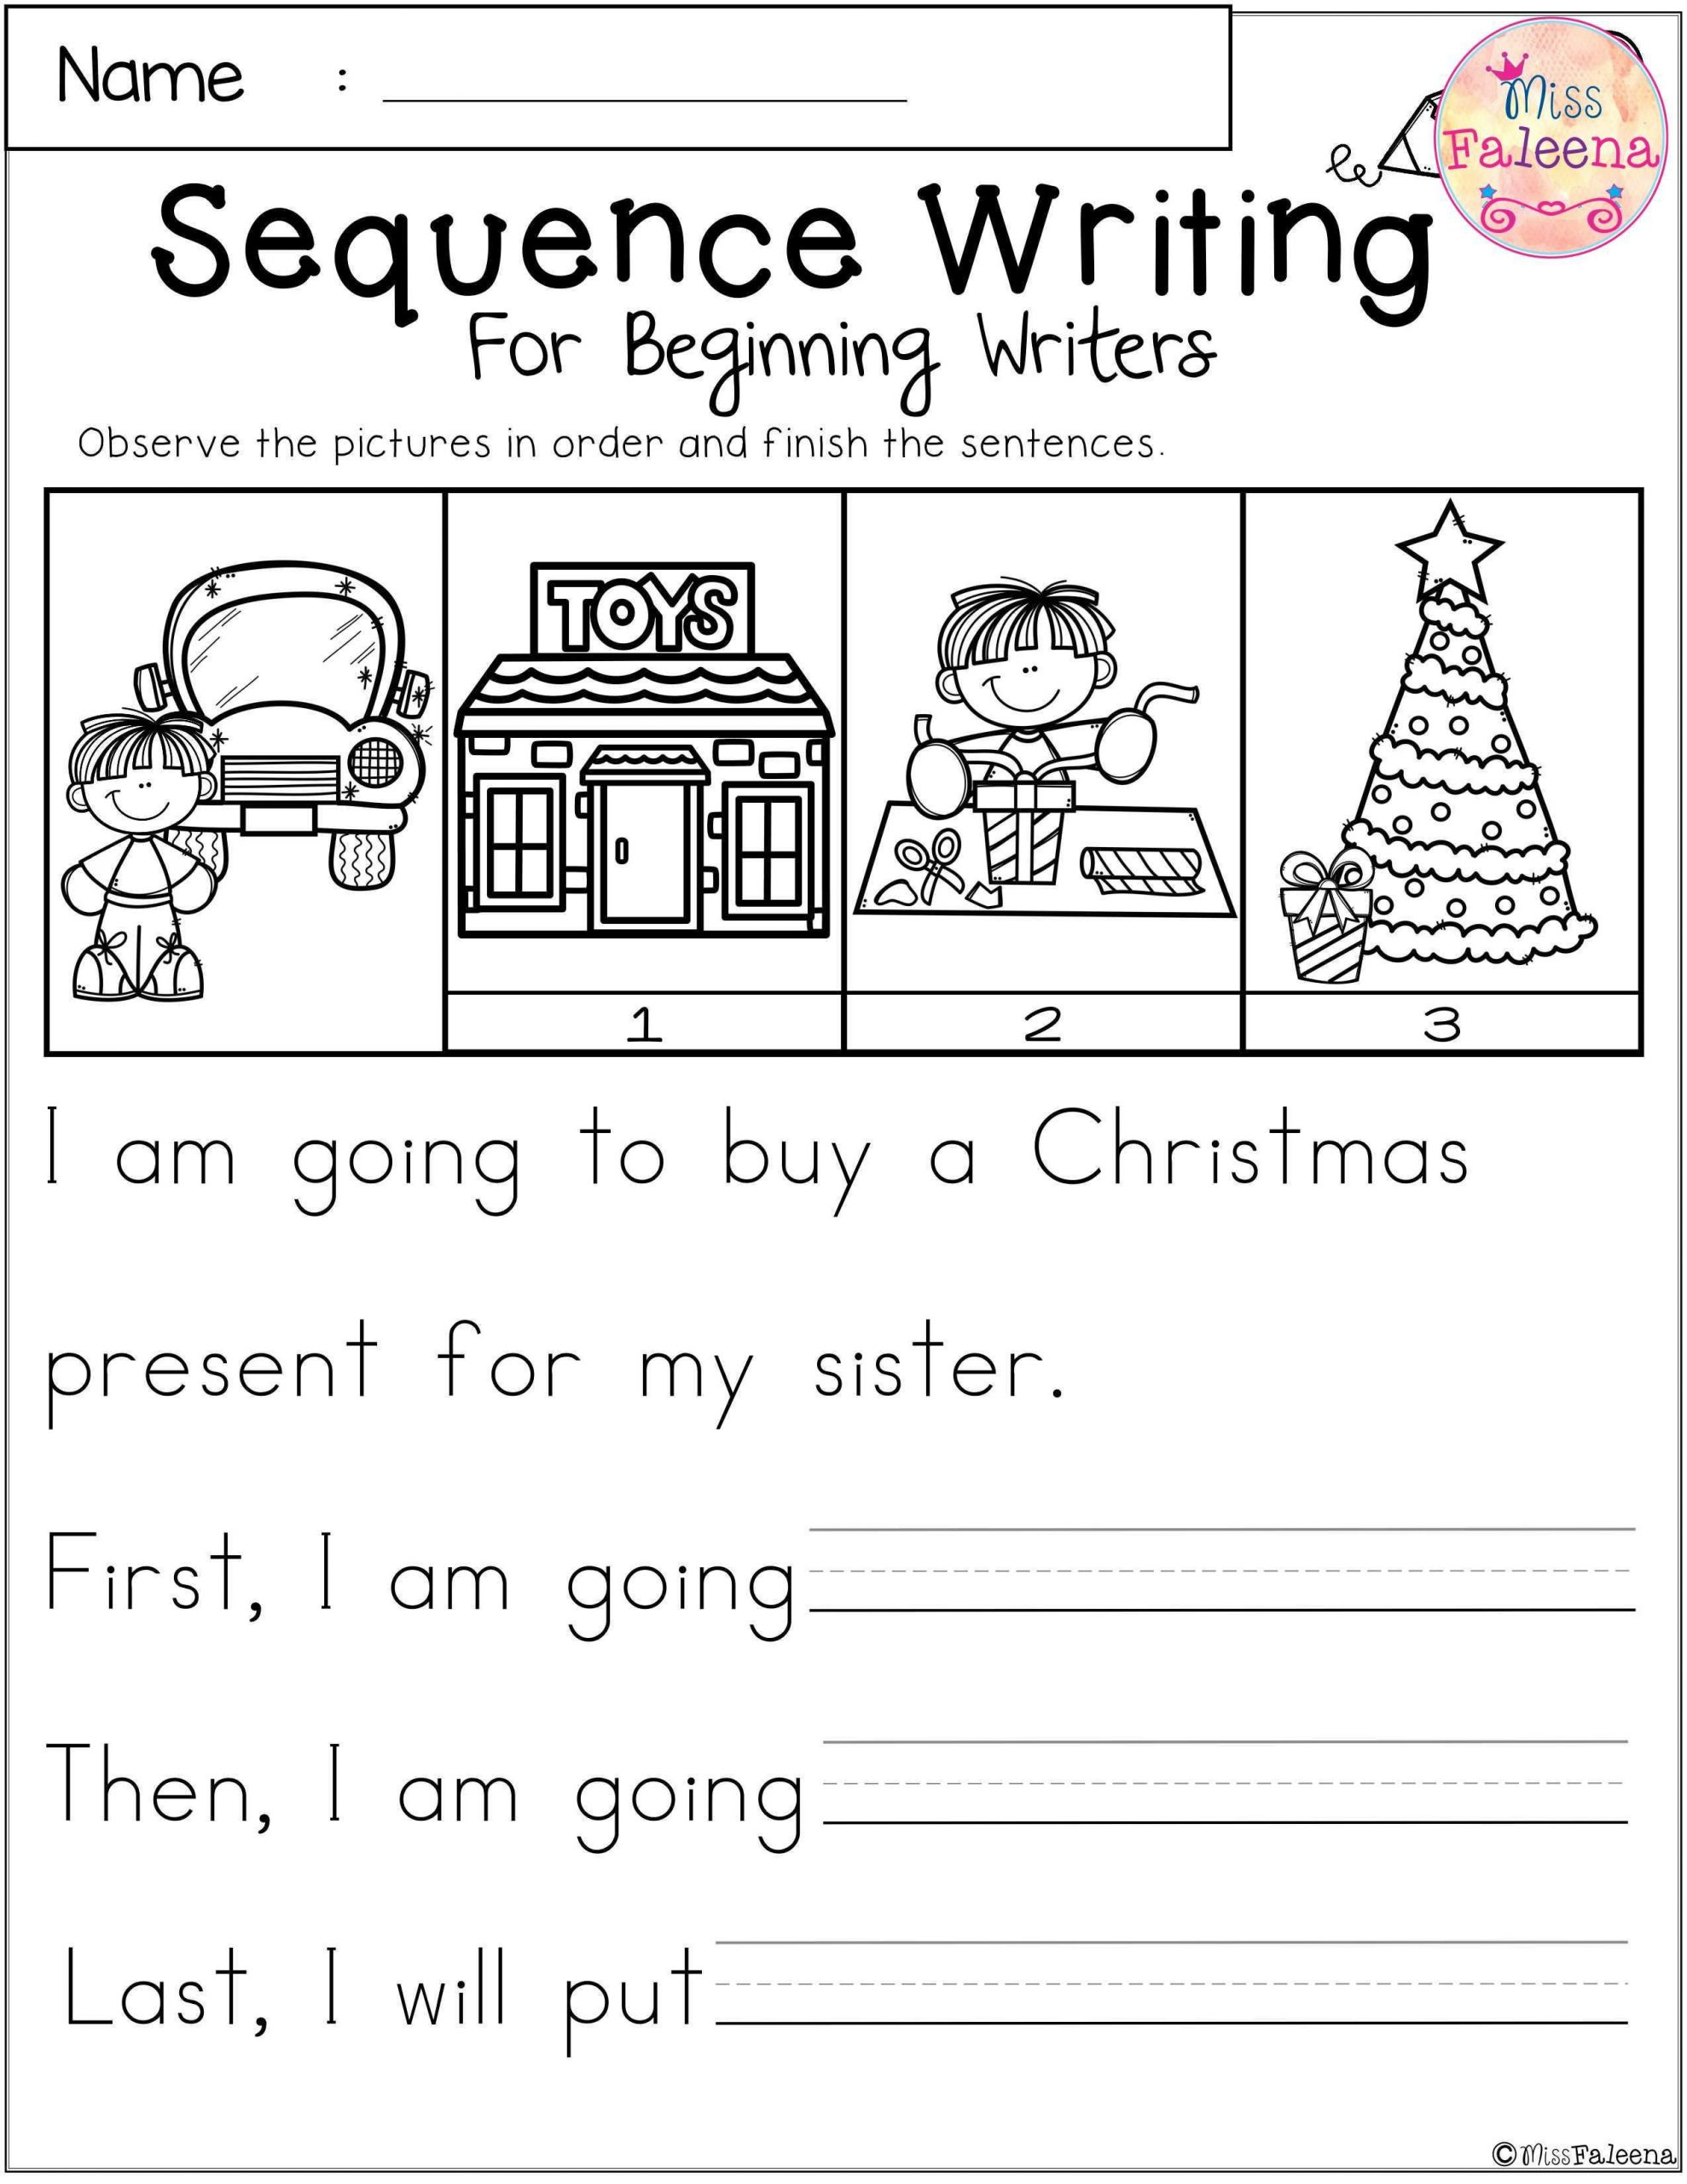 Sequencing Worksheets for Middle School December Sequence Writing for Beginning Writers